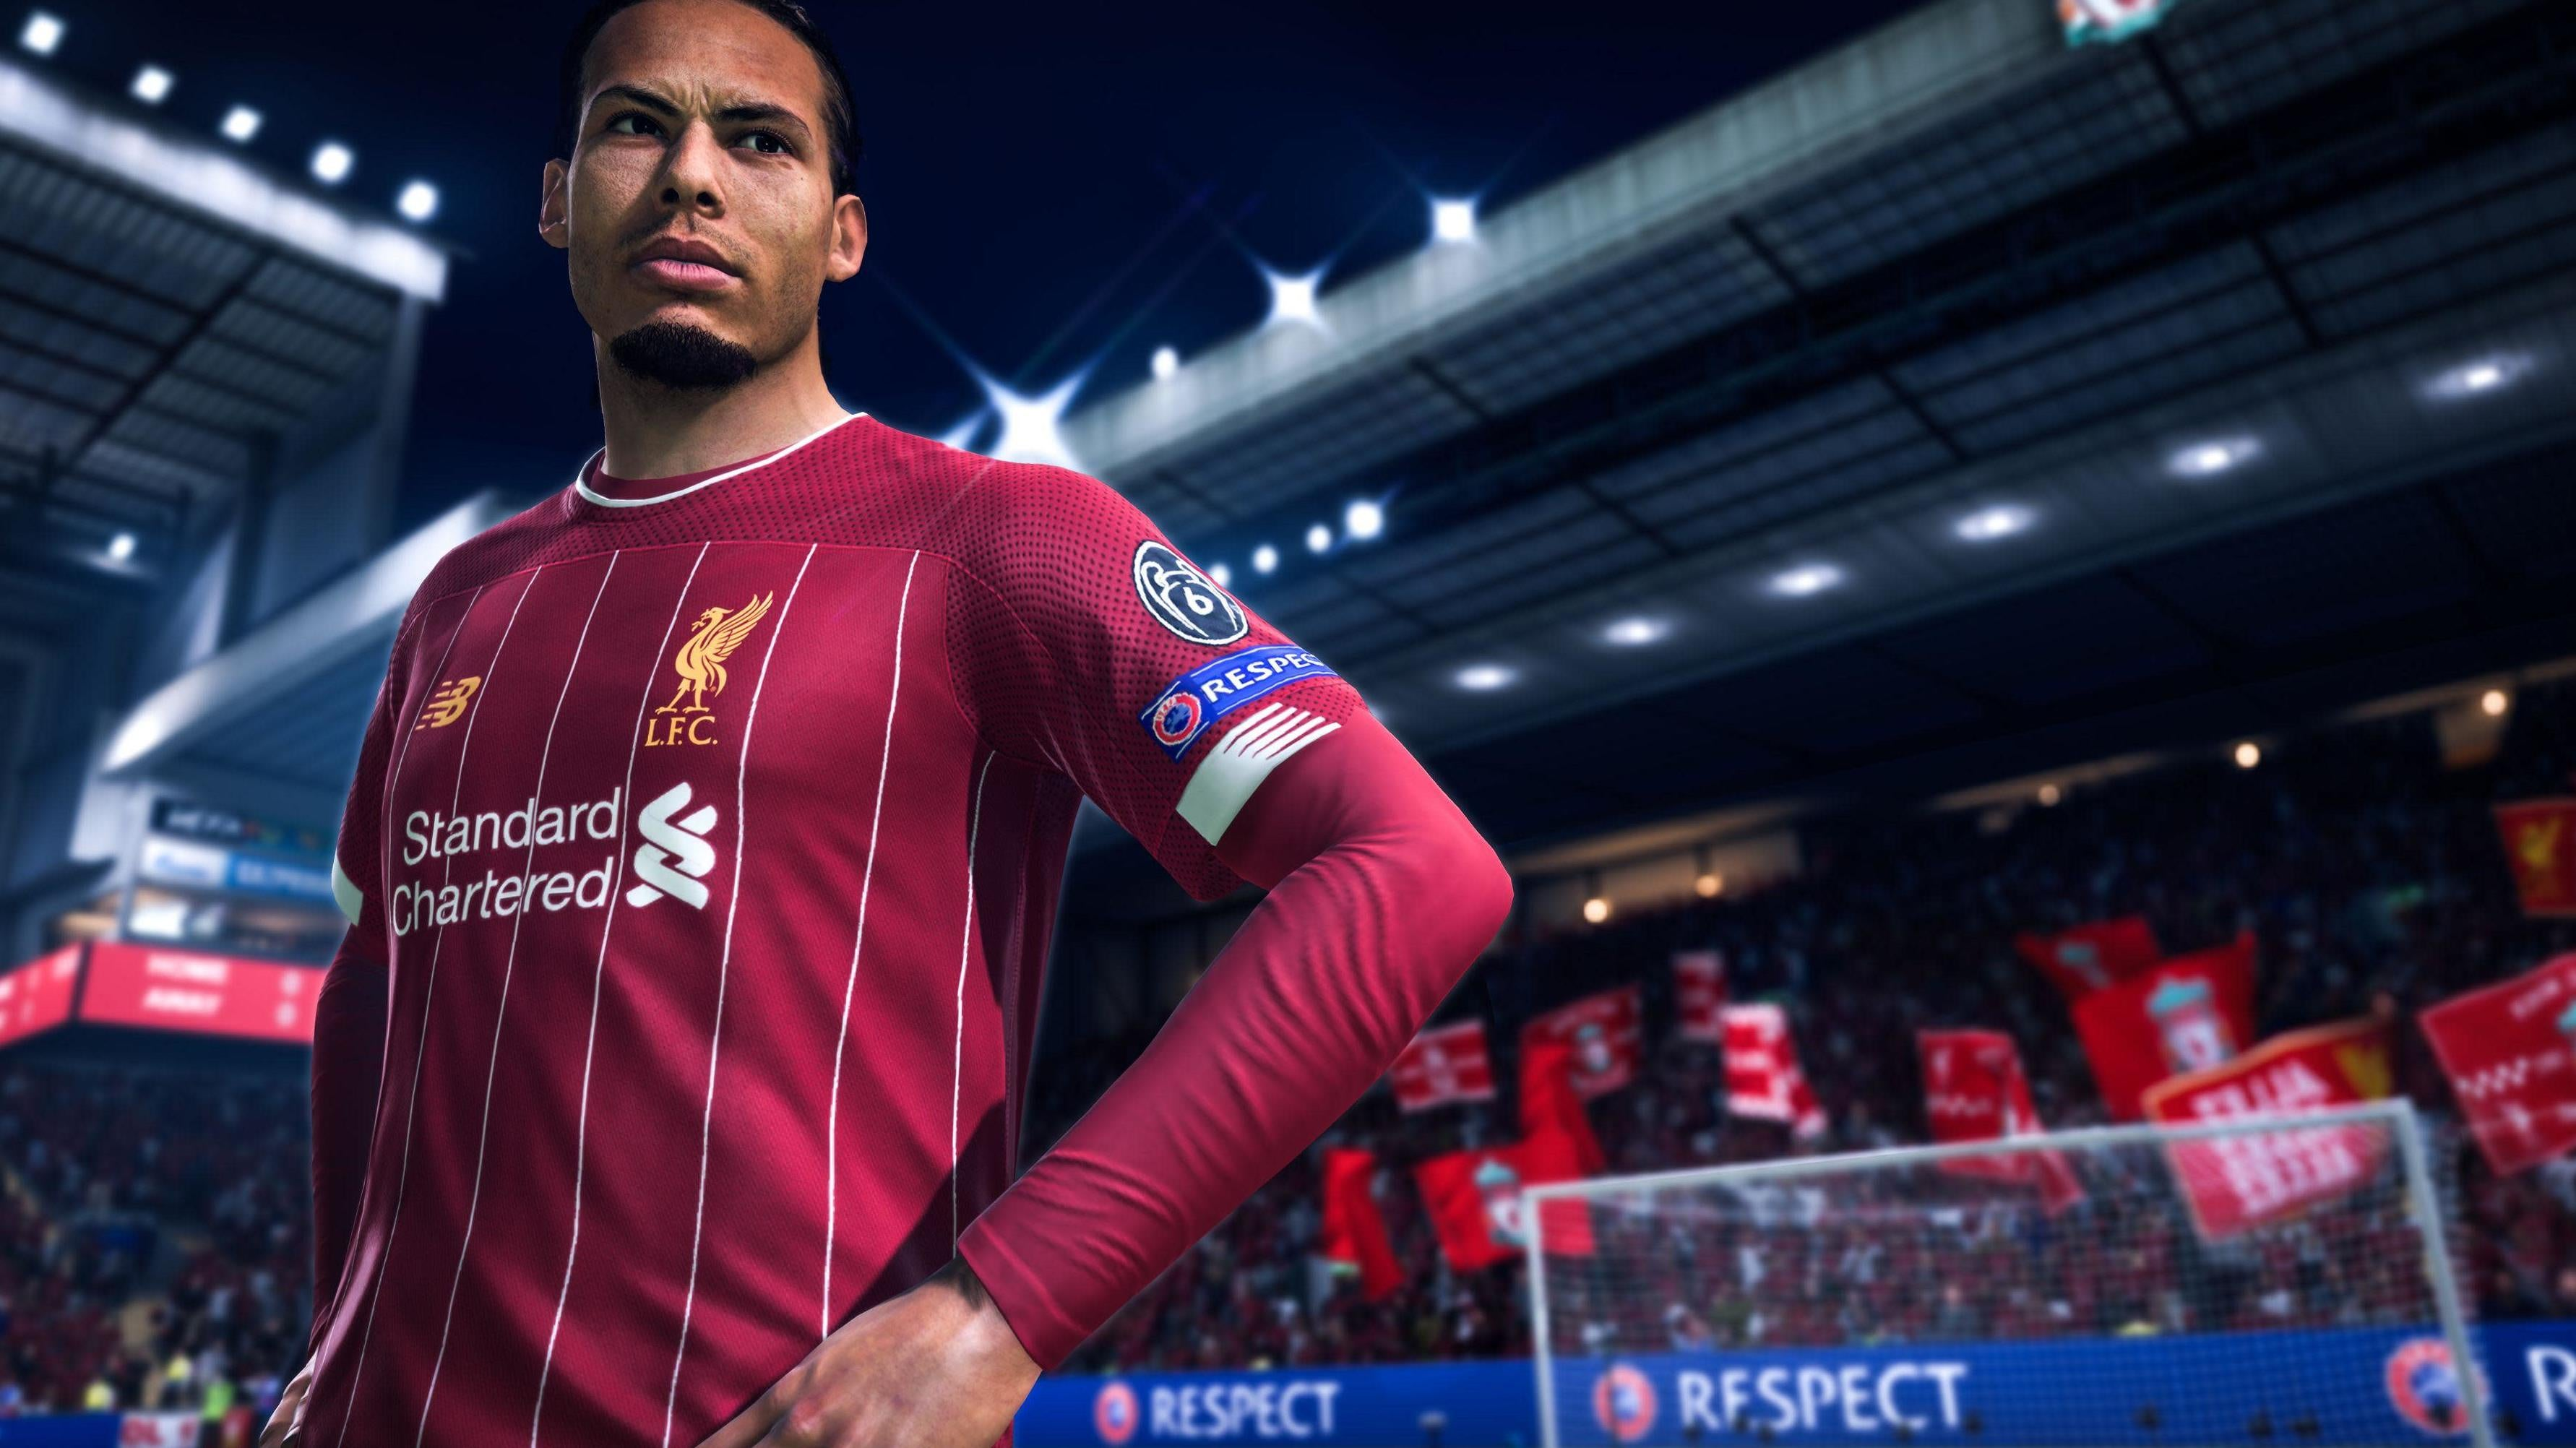 EA Website Leaks Personal Details Of FIFA Players